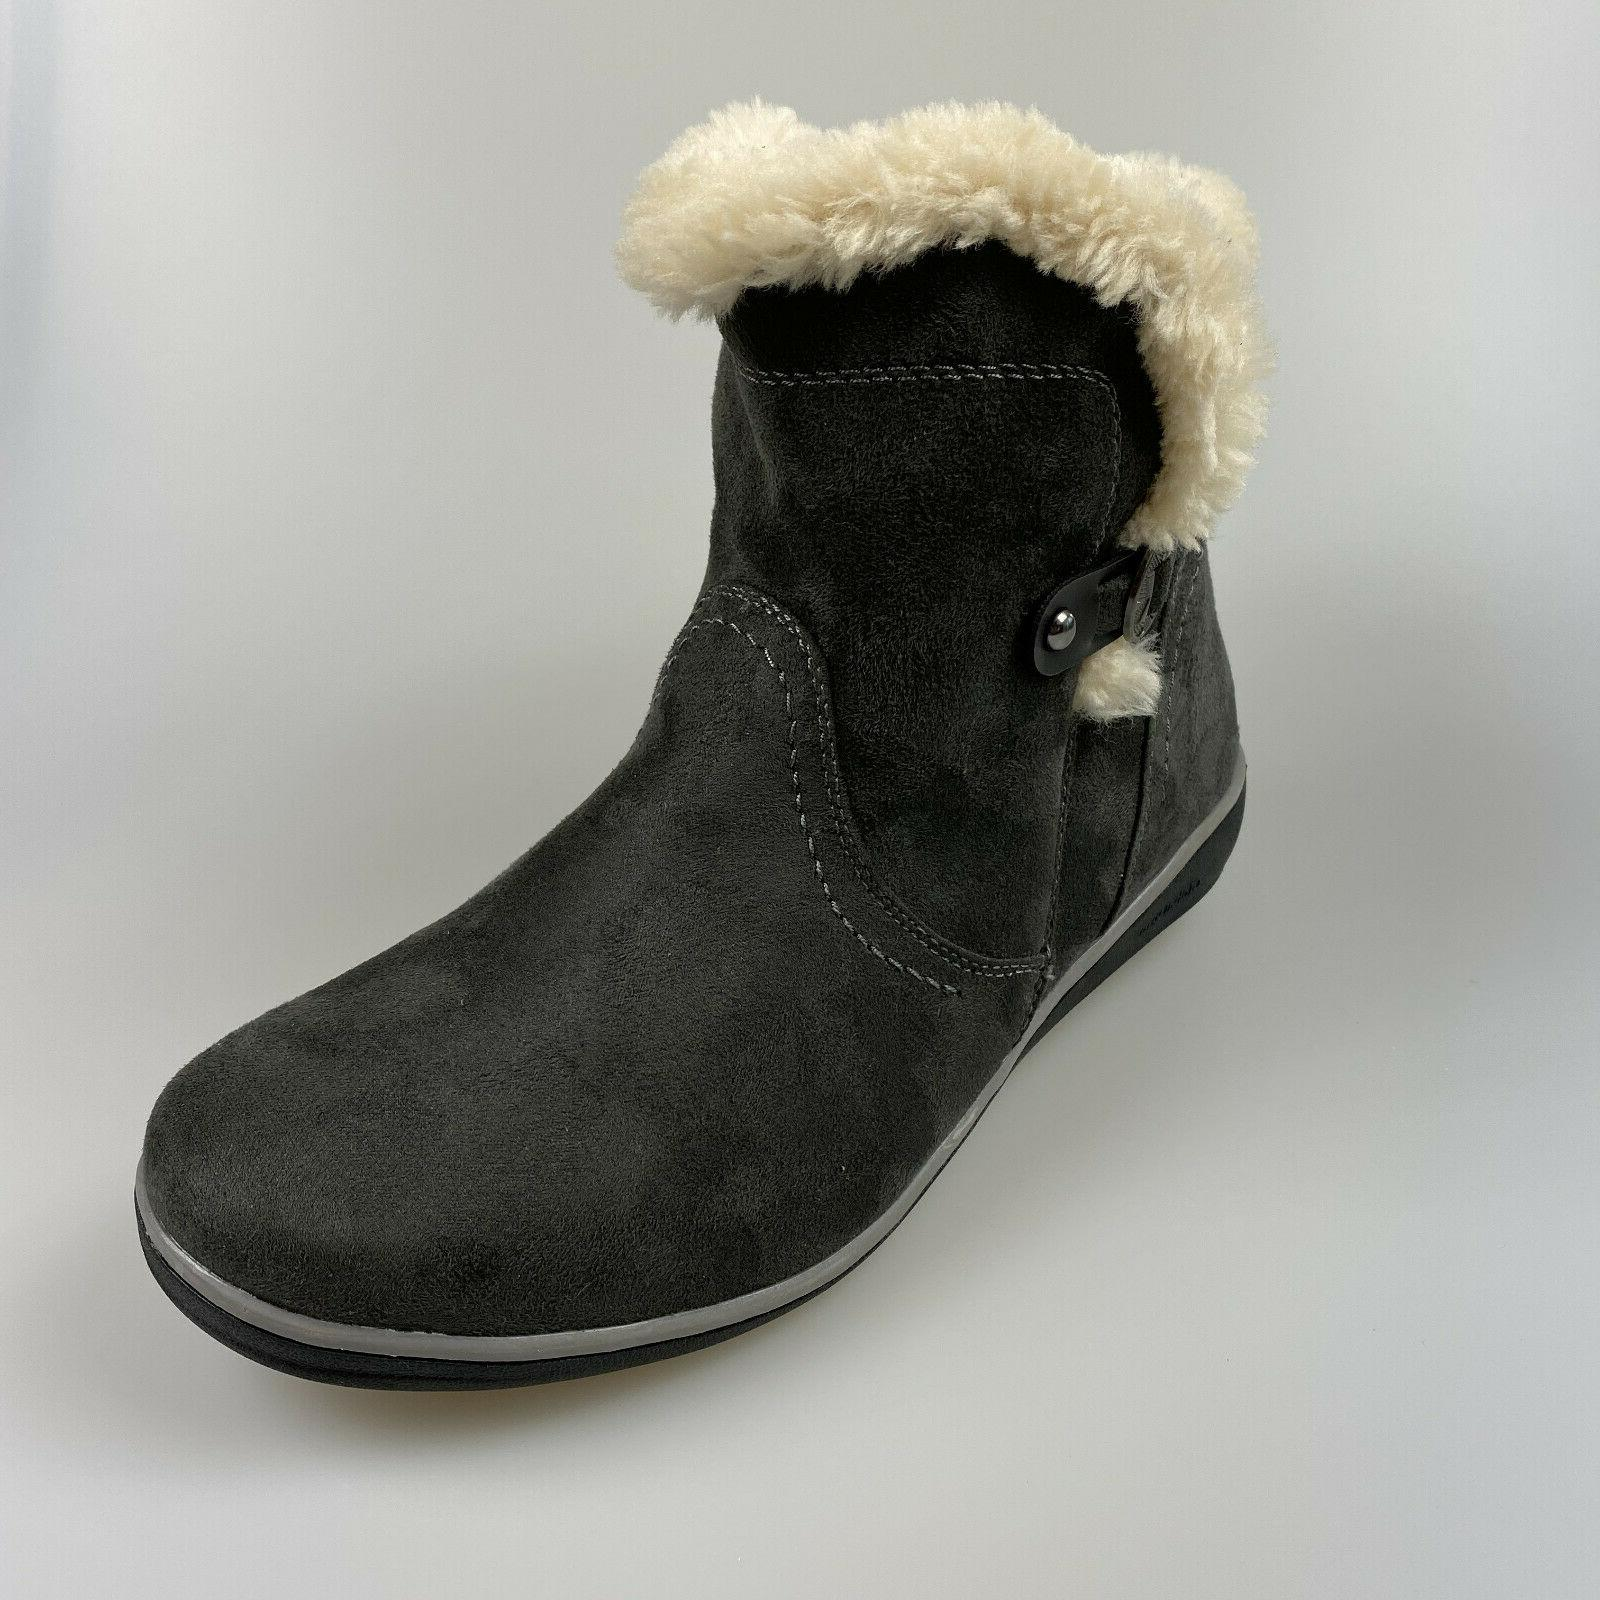 $69 NEW Women's 8 Suede Boots Feax Fur